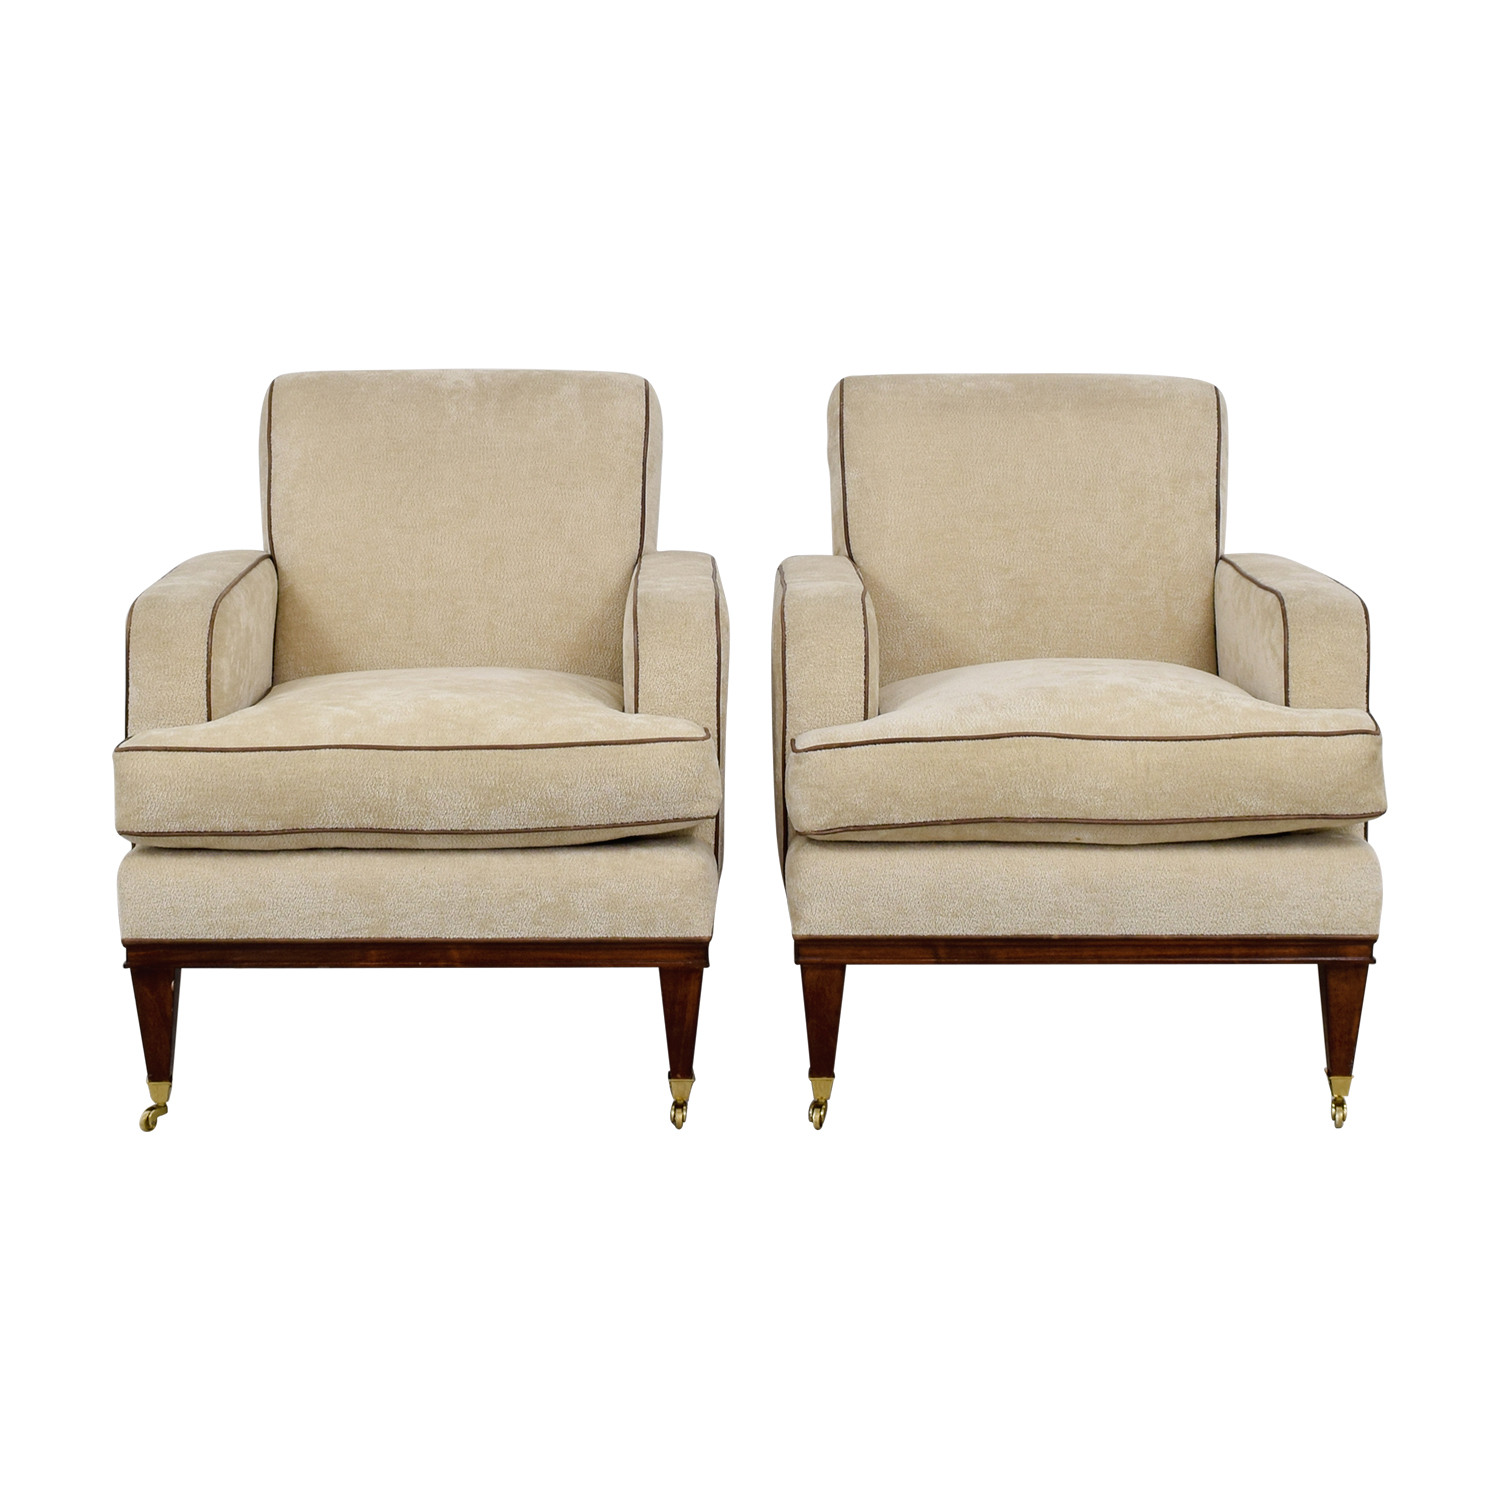 shop Furniture Masters Beige Club Chairs on Castors Furniture Masters Chairs